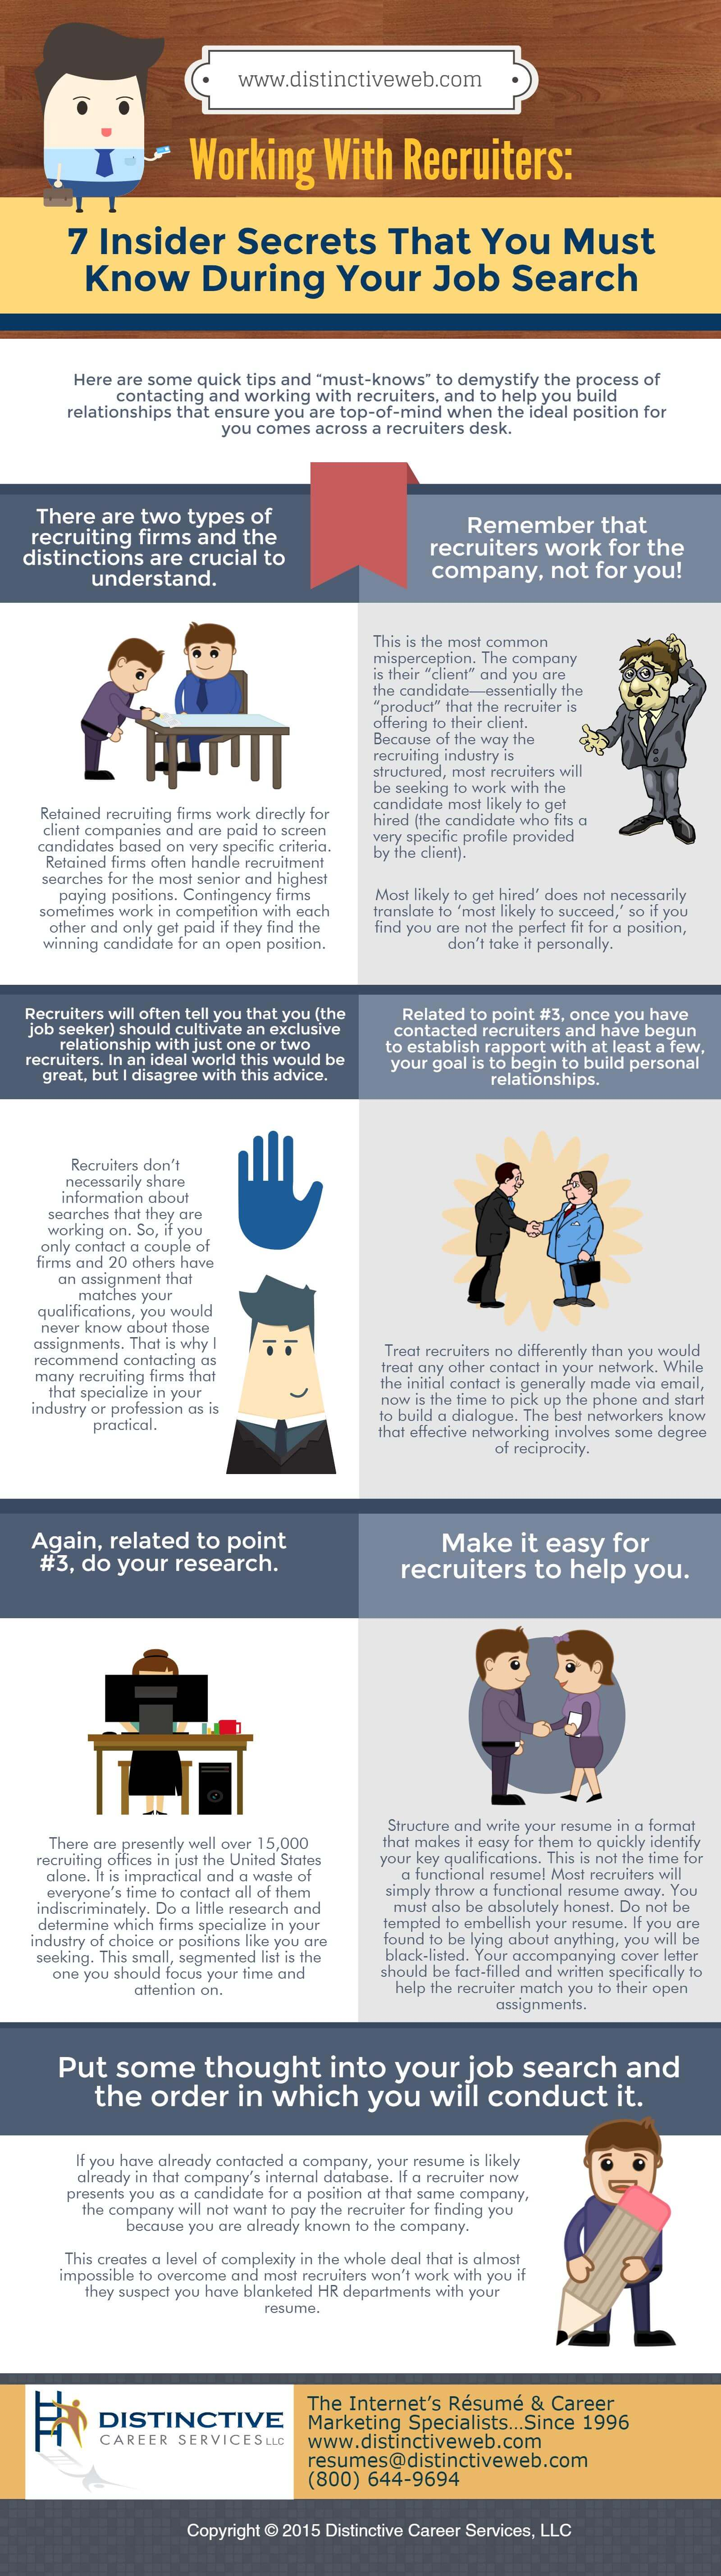 Infographic: Working with Recruiters: 7 Insider Secrets that You Must Know During Your Job Search